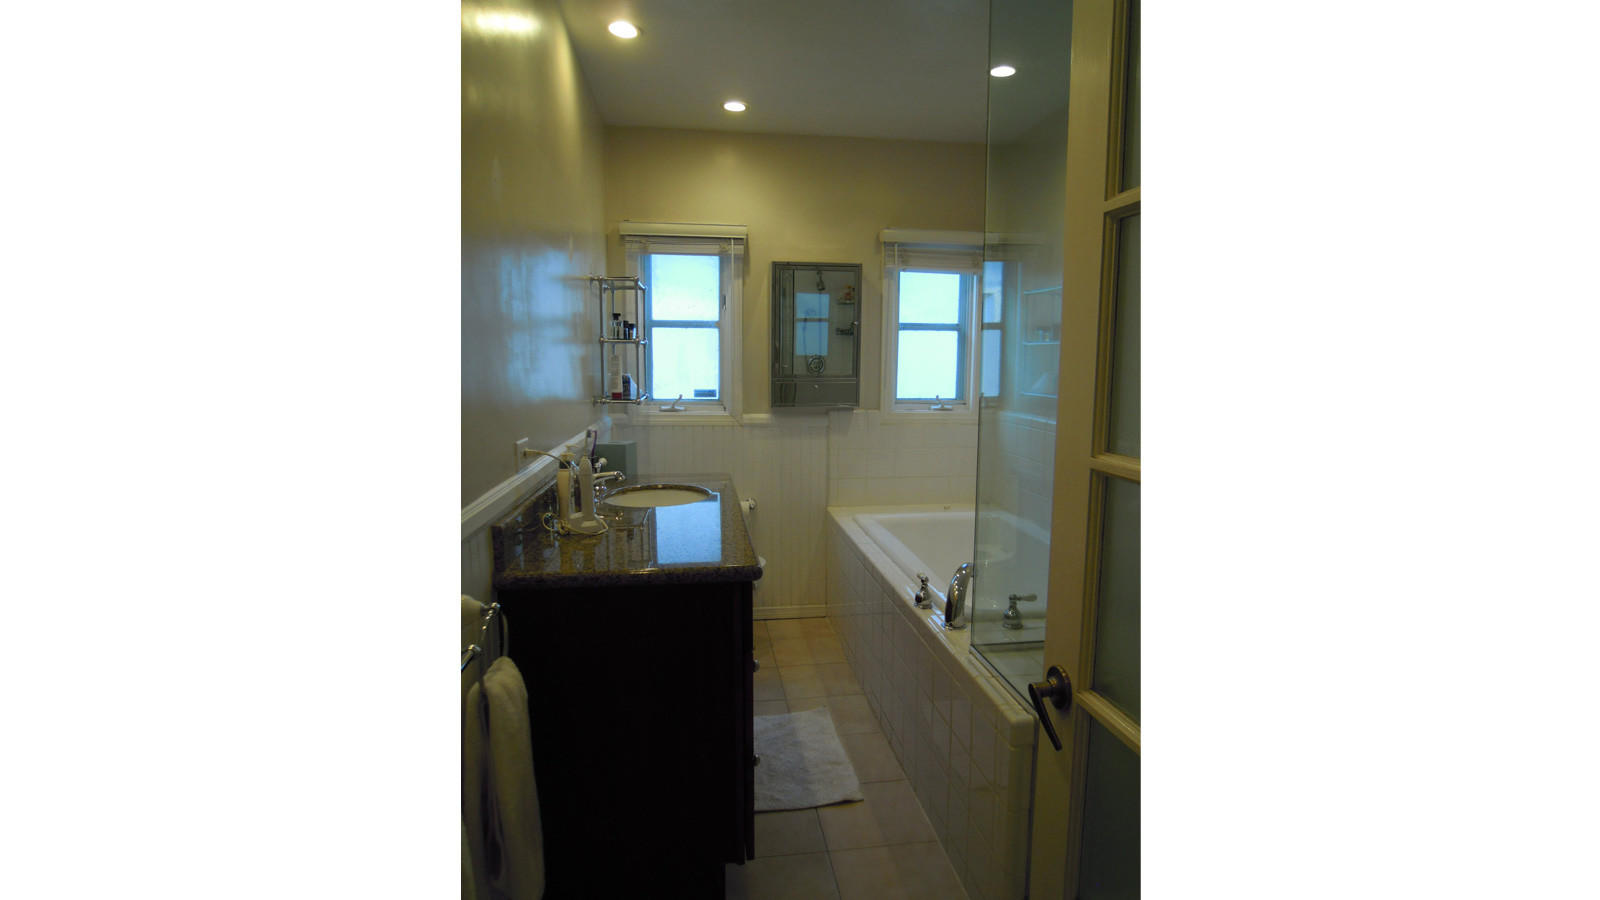 Before picture of the bathroom of the home of Patrick Wildnauer and husband Tom Balamaci.